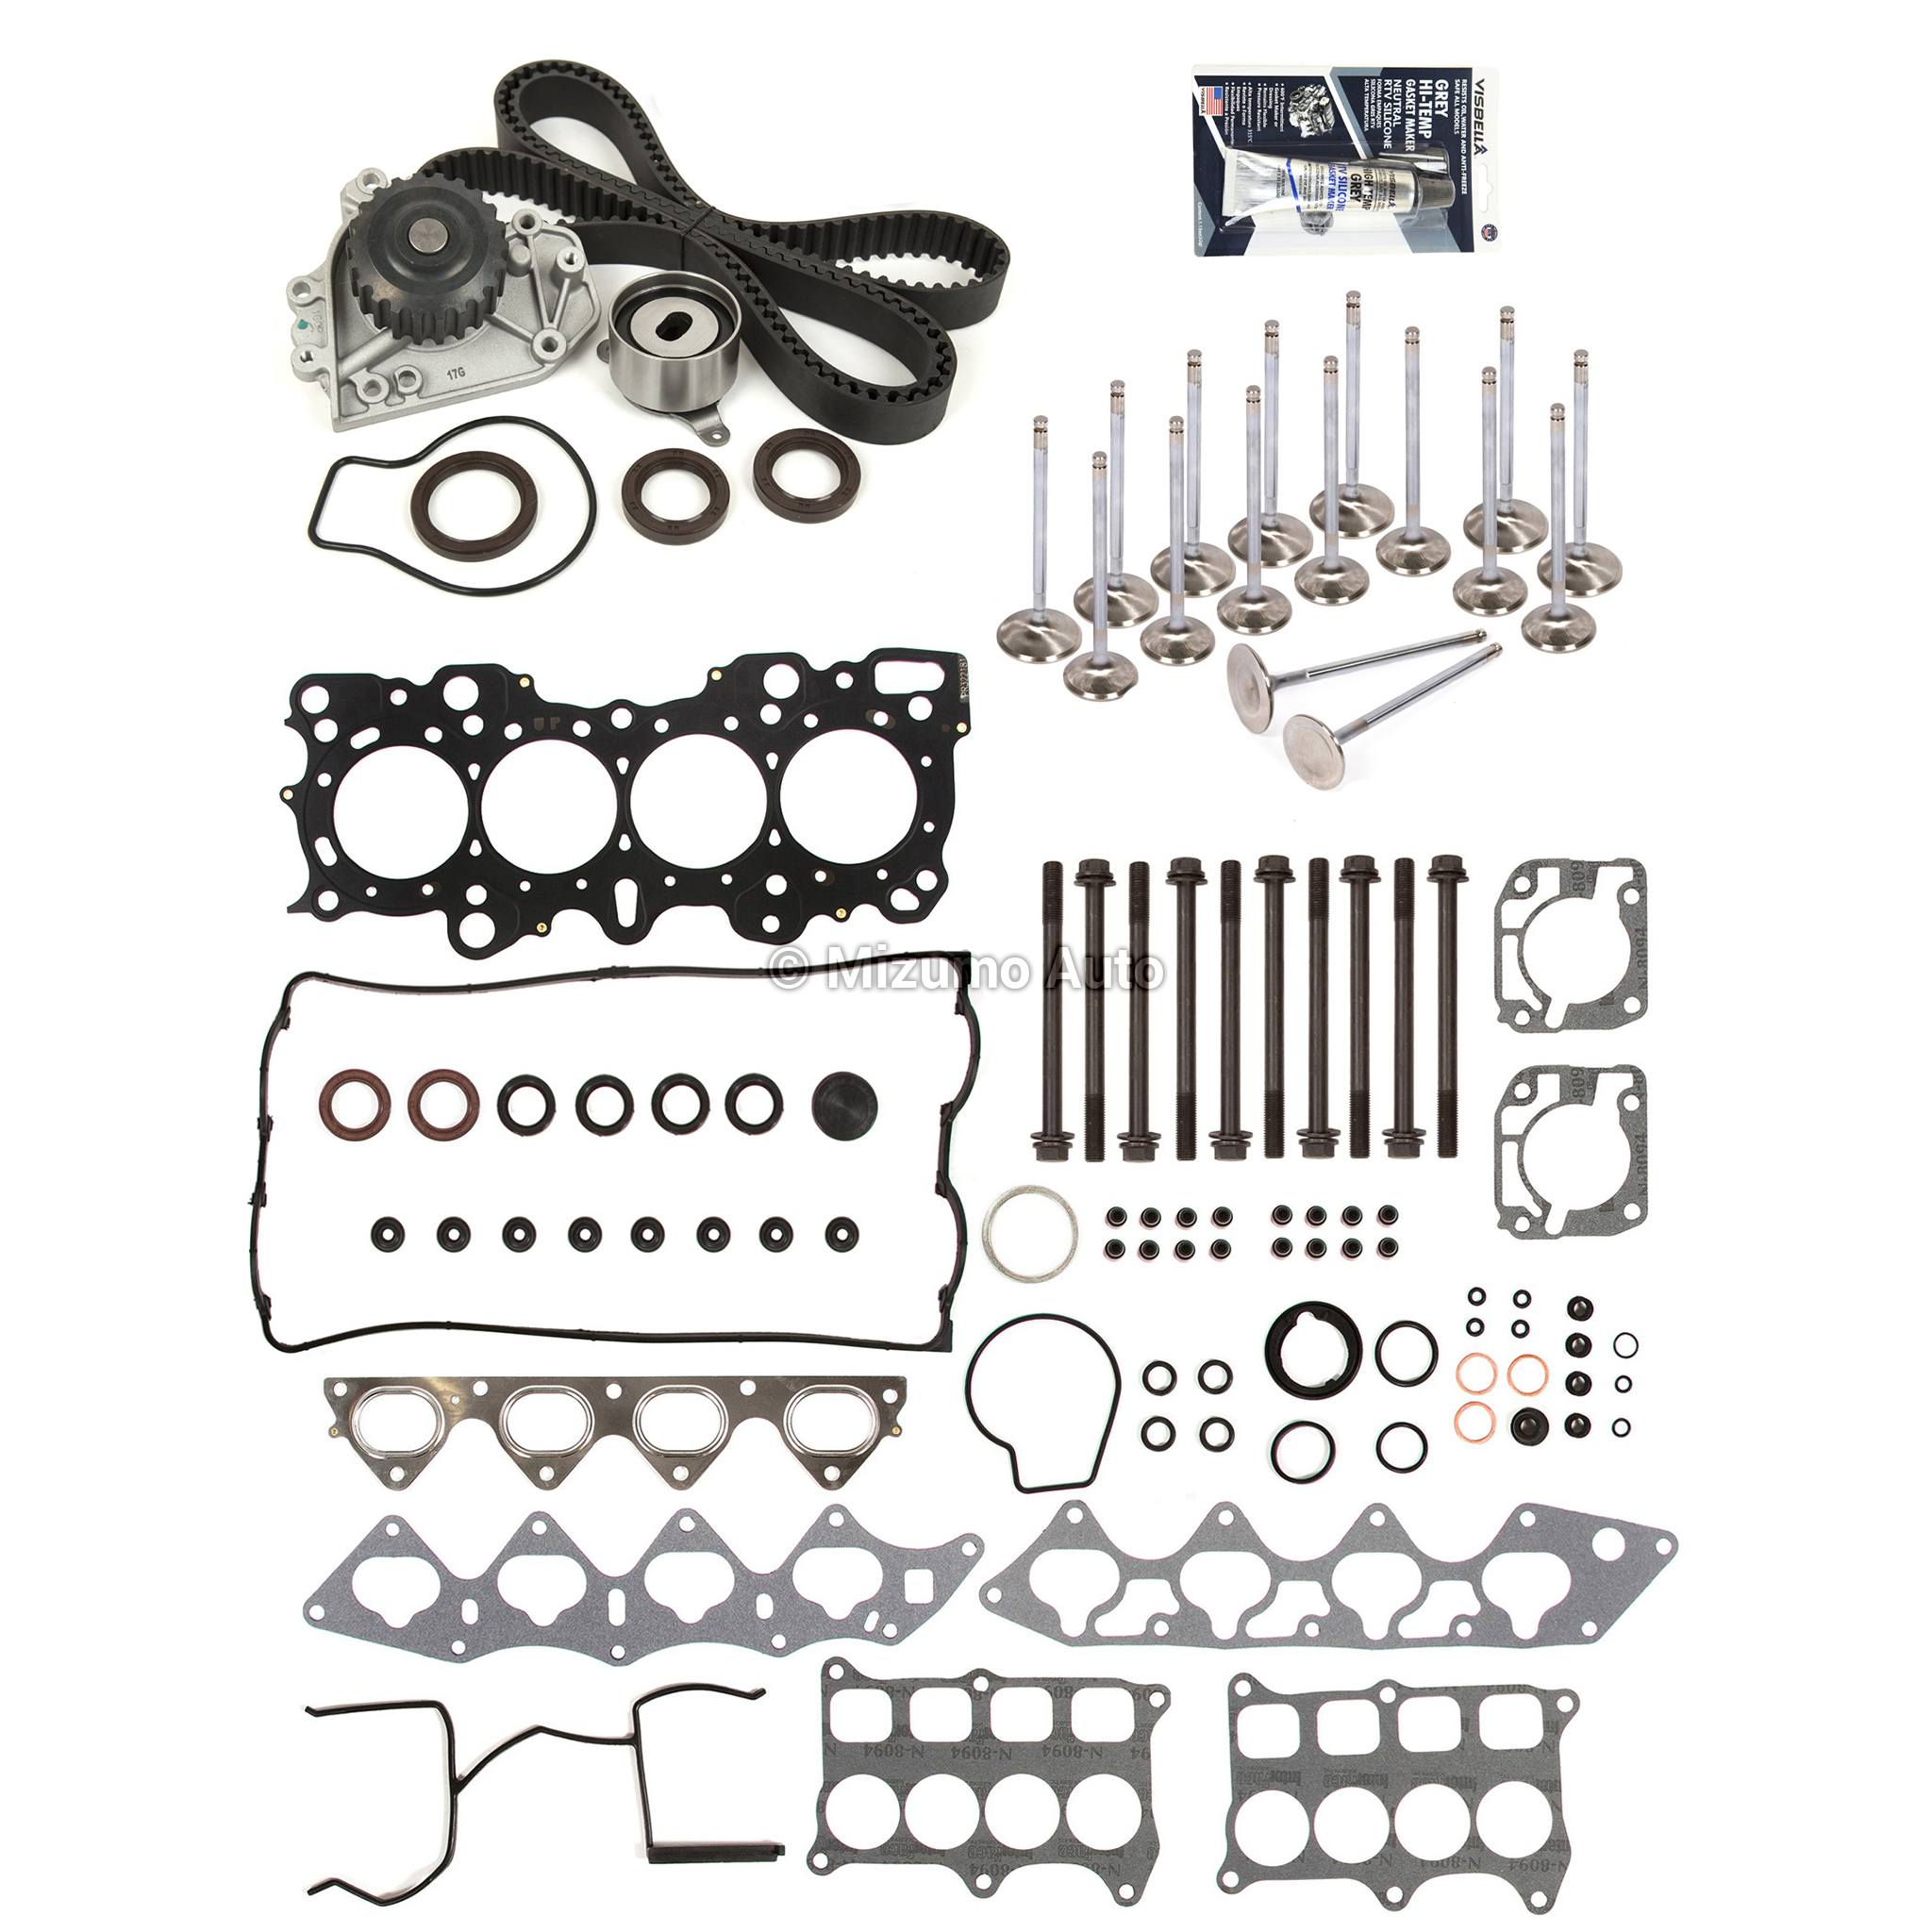 Mls Head Gasket Set Valves Timing Belt Kit Fit 94 01 Acura